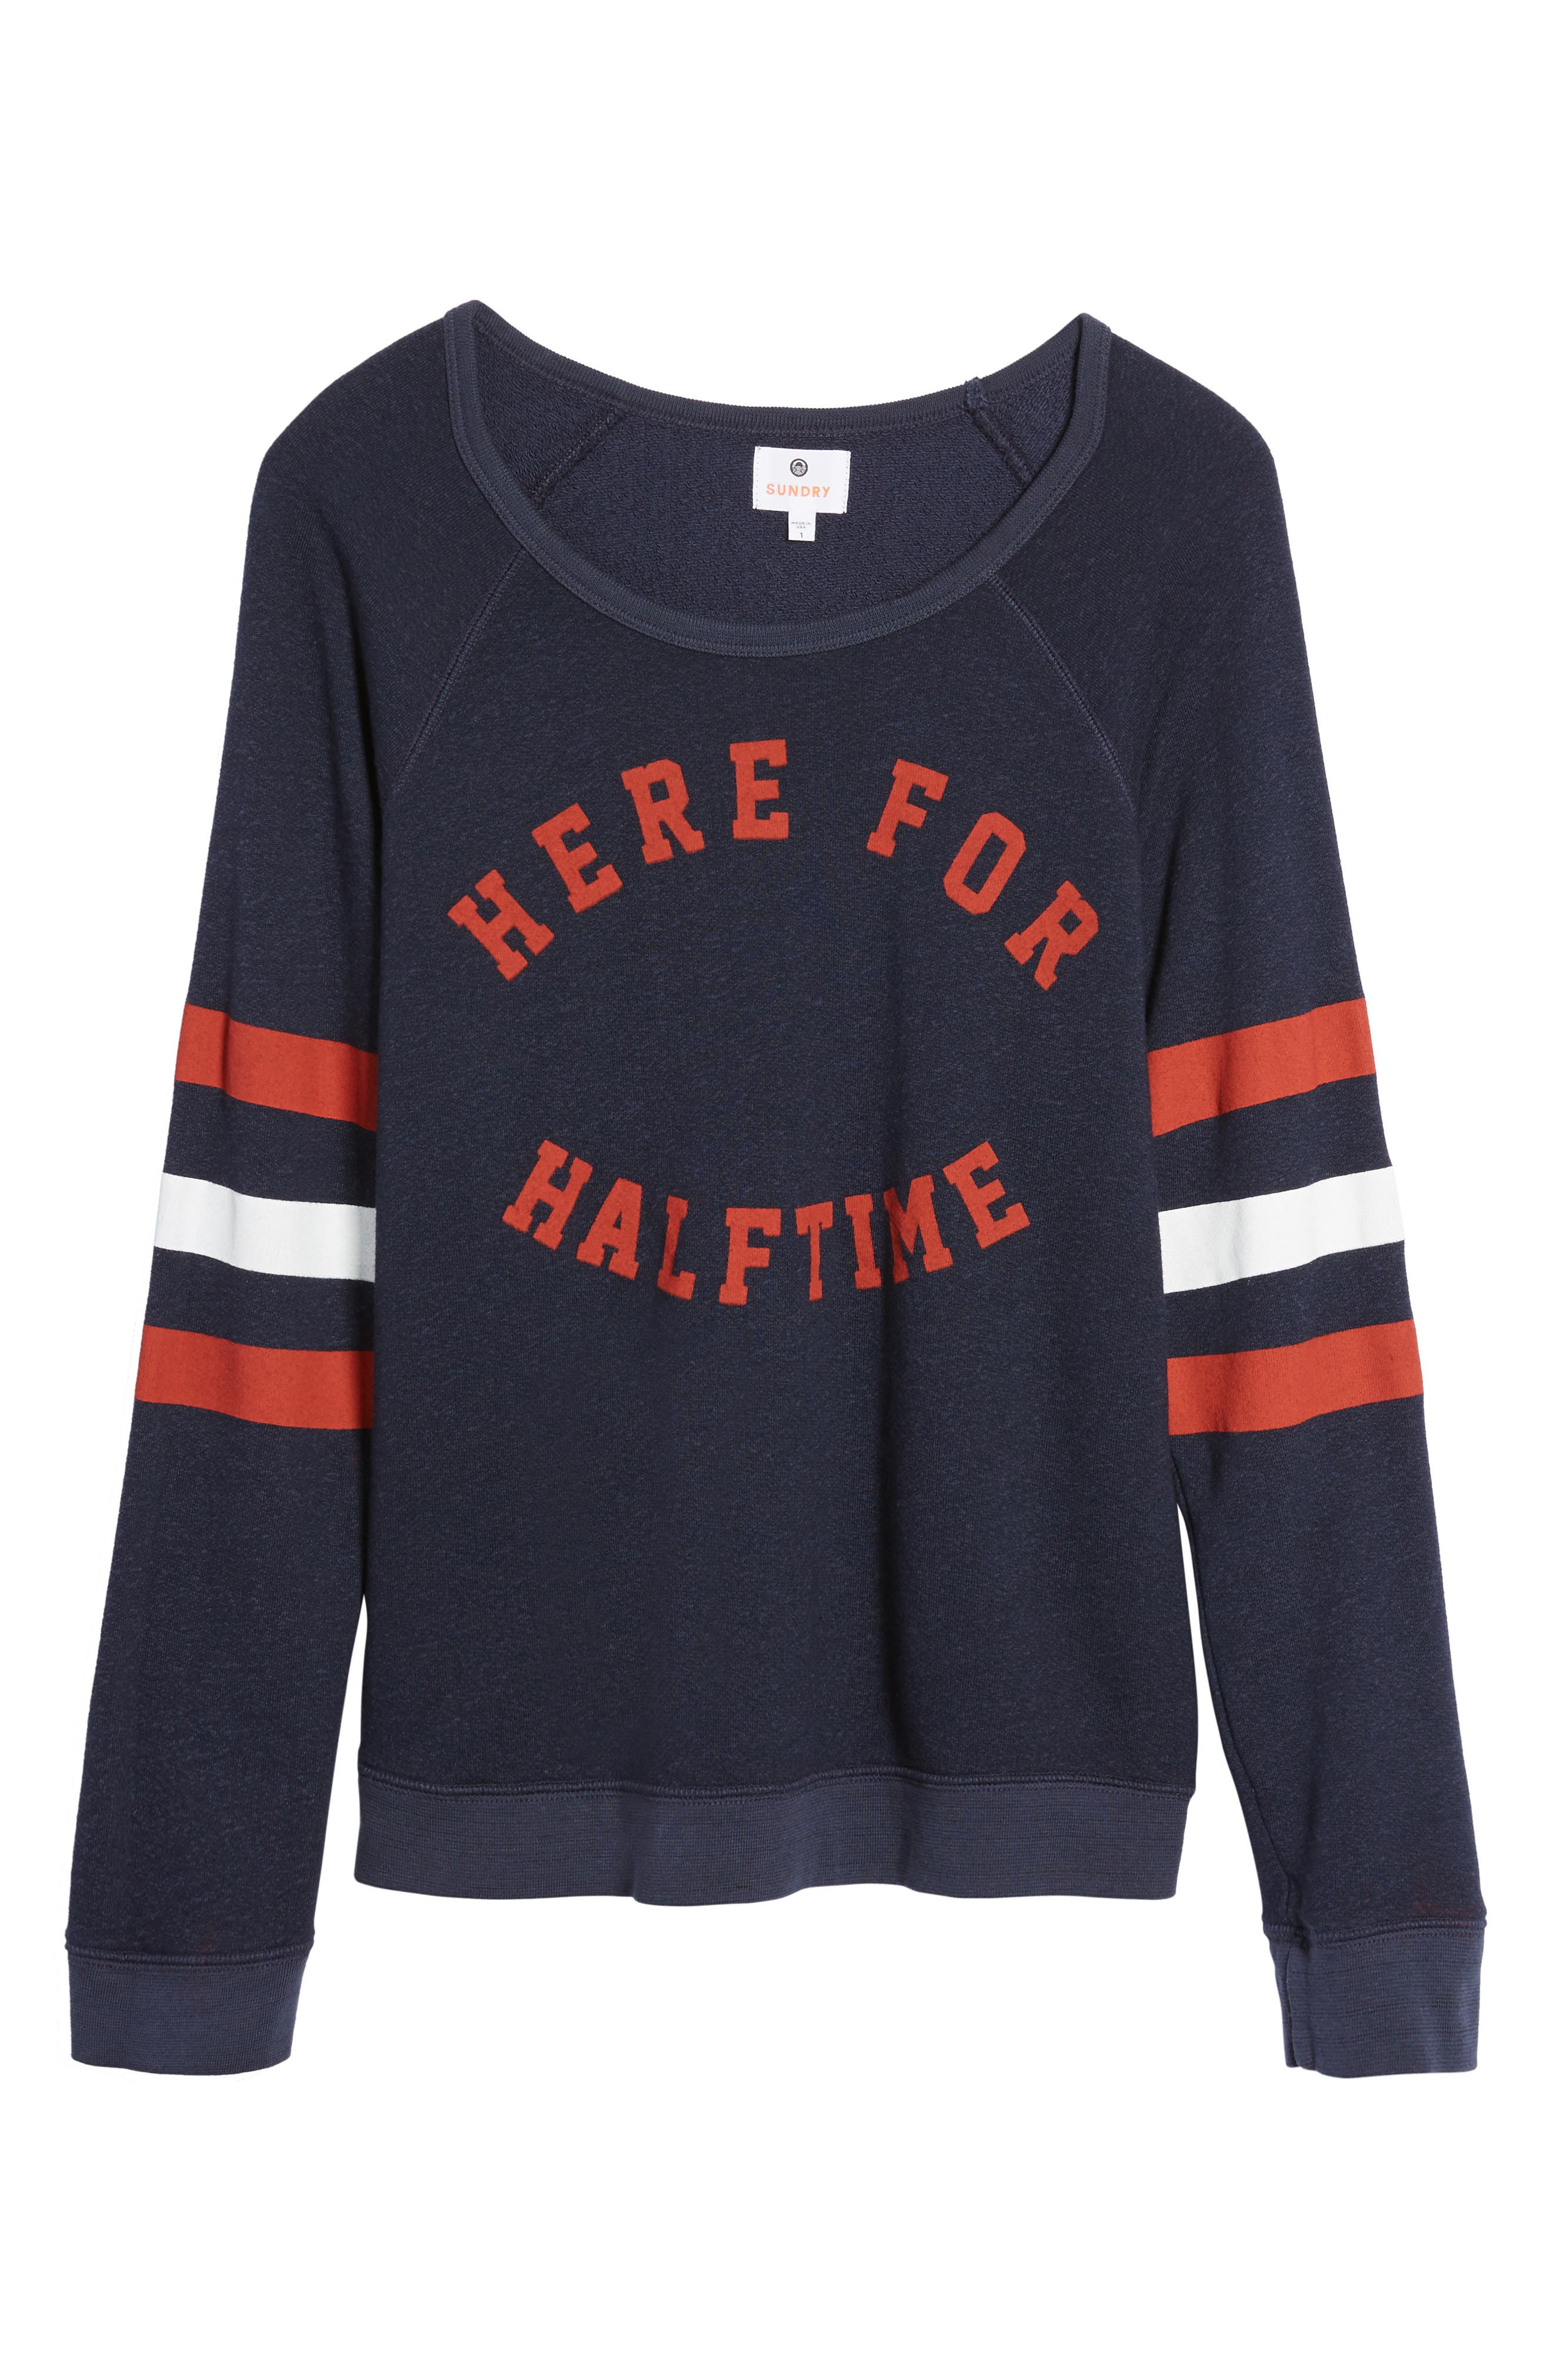 Here for Halftime Pullover,                             Alternate thumbnail 6, color,                             410